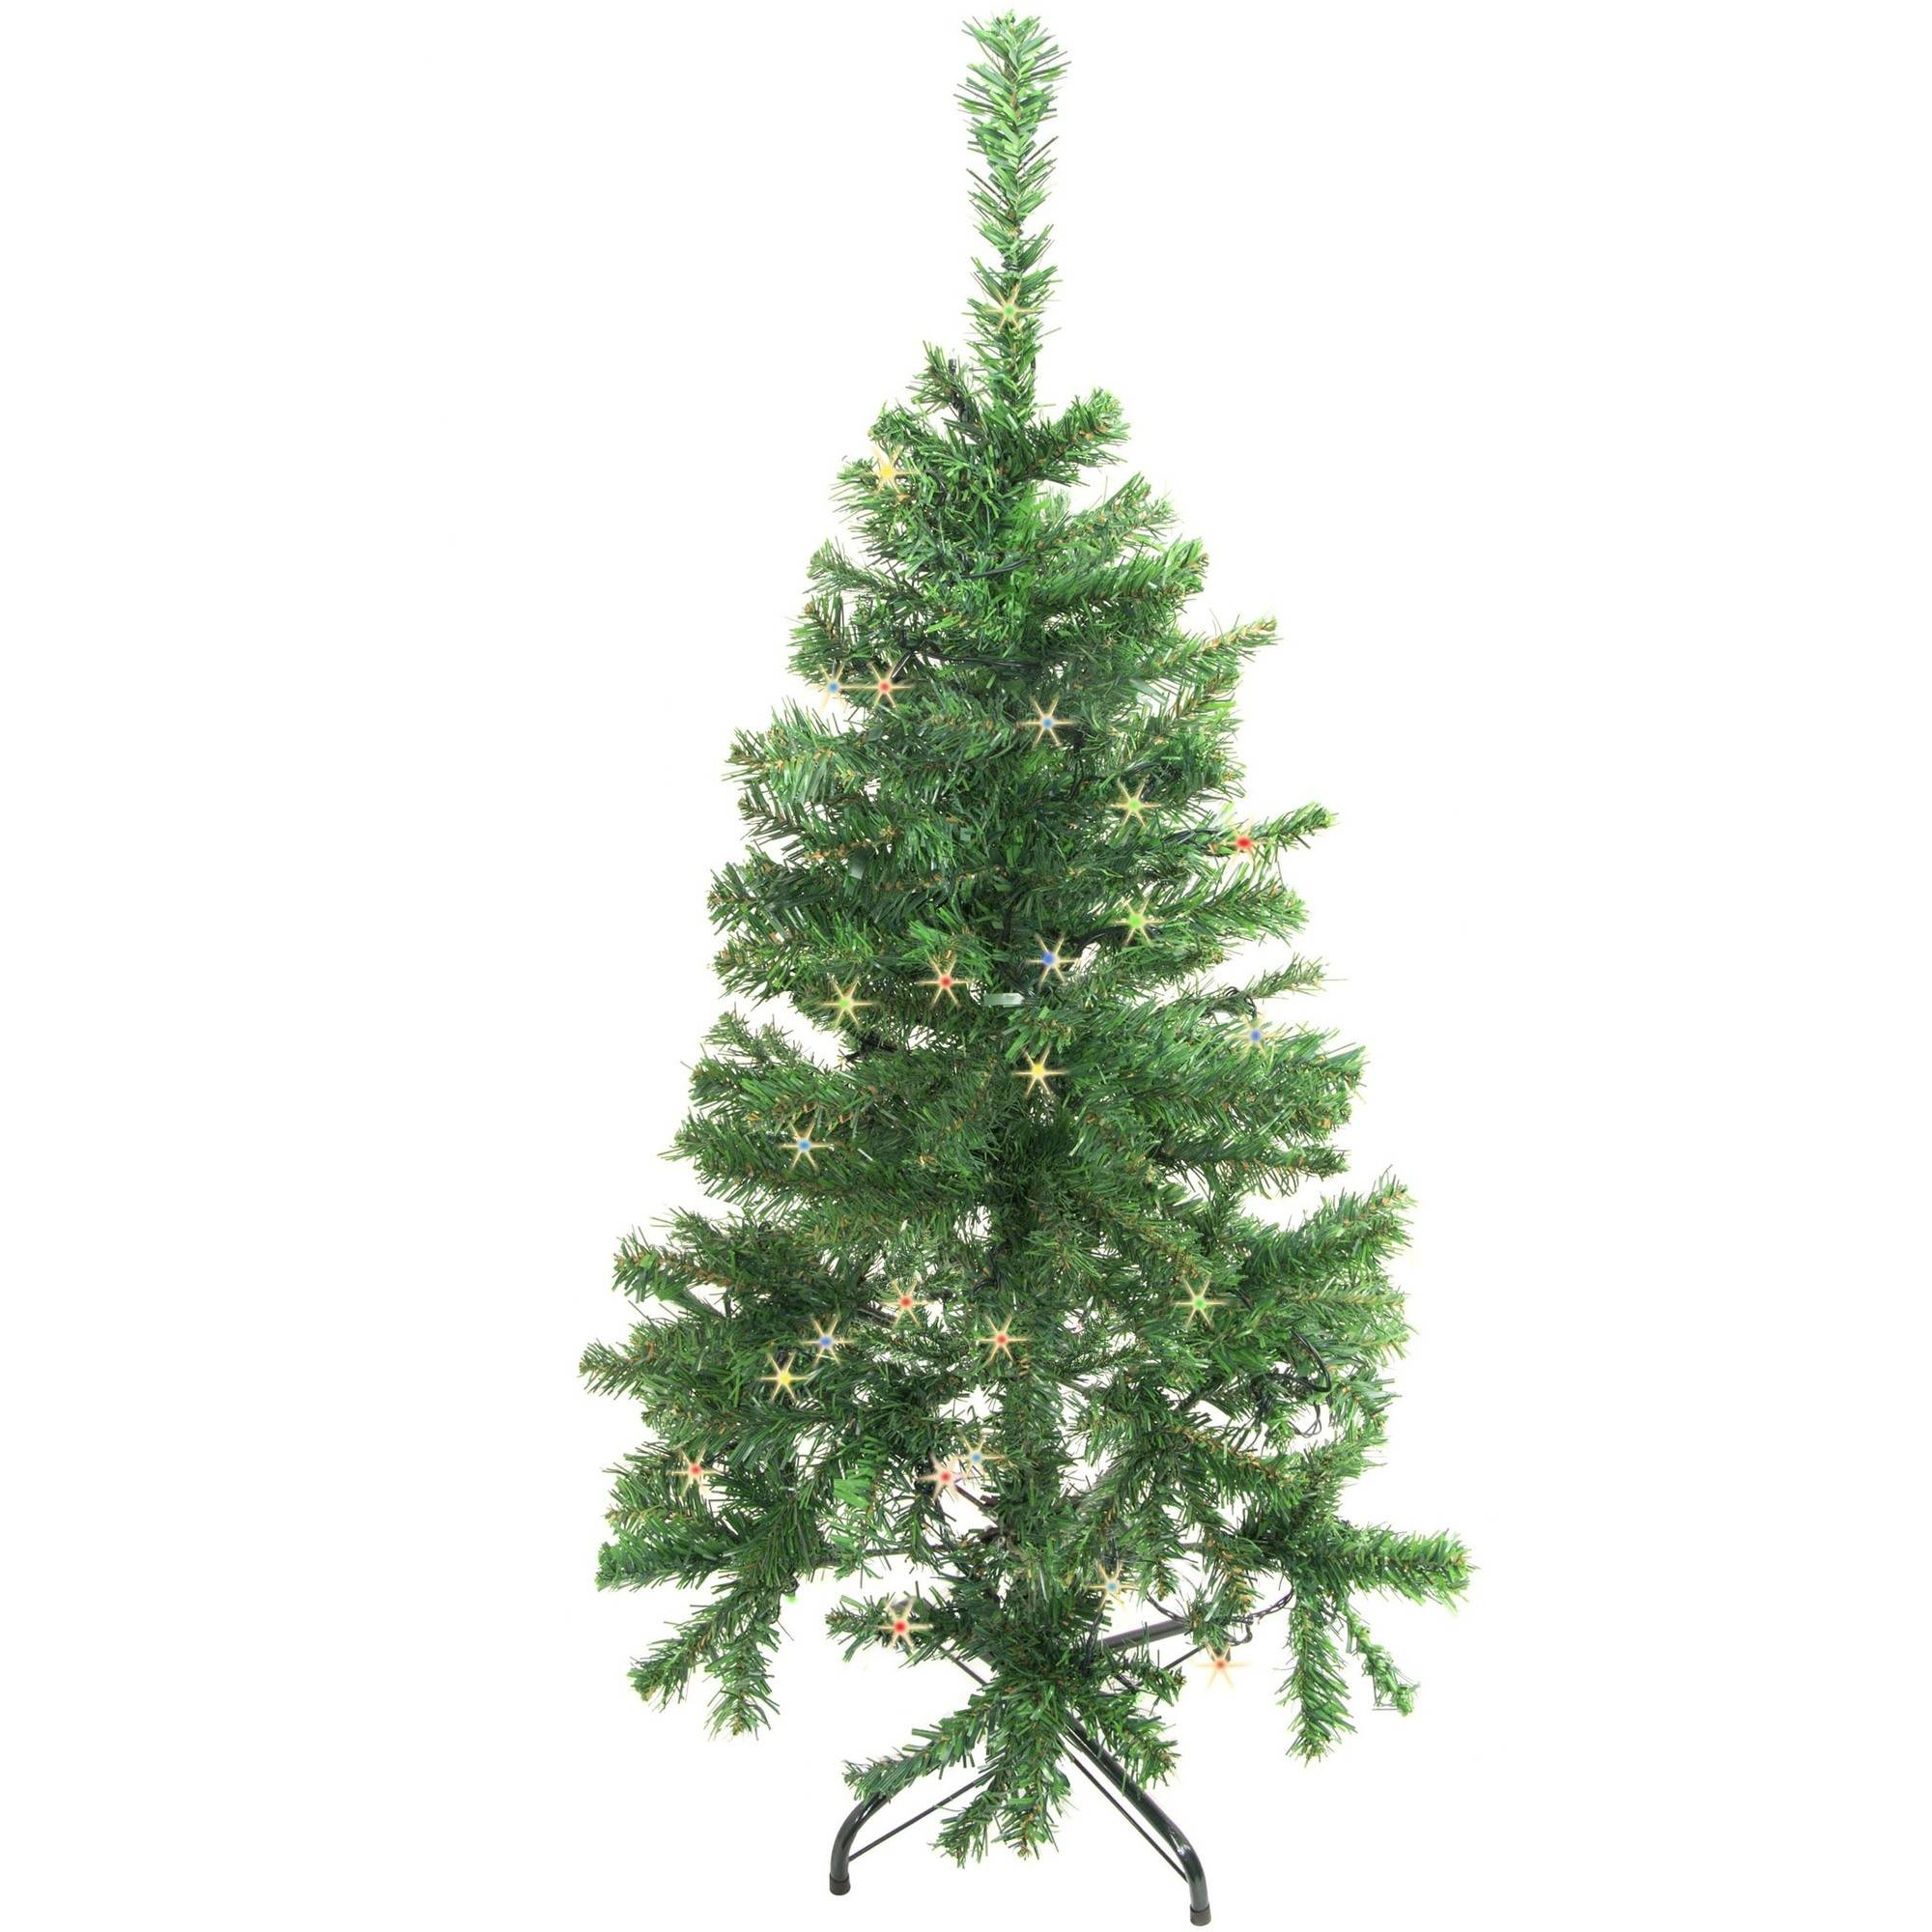 ALEKO CT48H50MC Pre-Lit Artificial Christmas Tree, 4', Green Tree with Multi-Color Lights